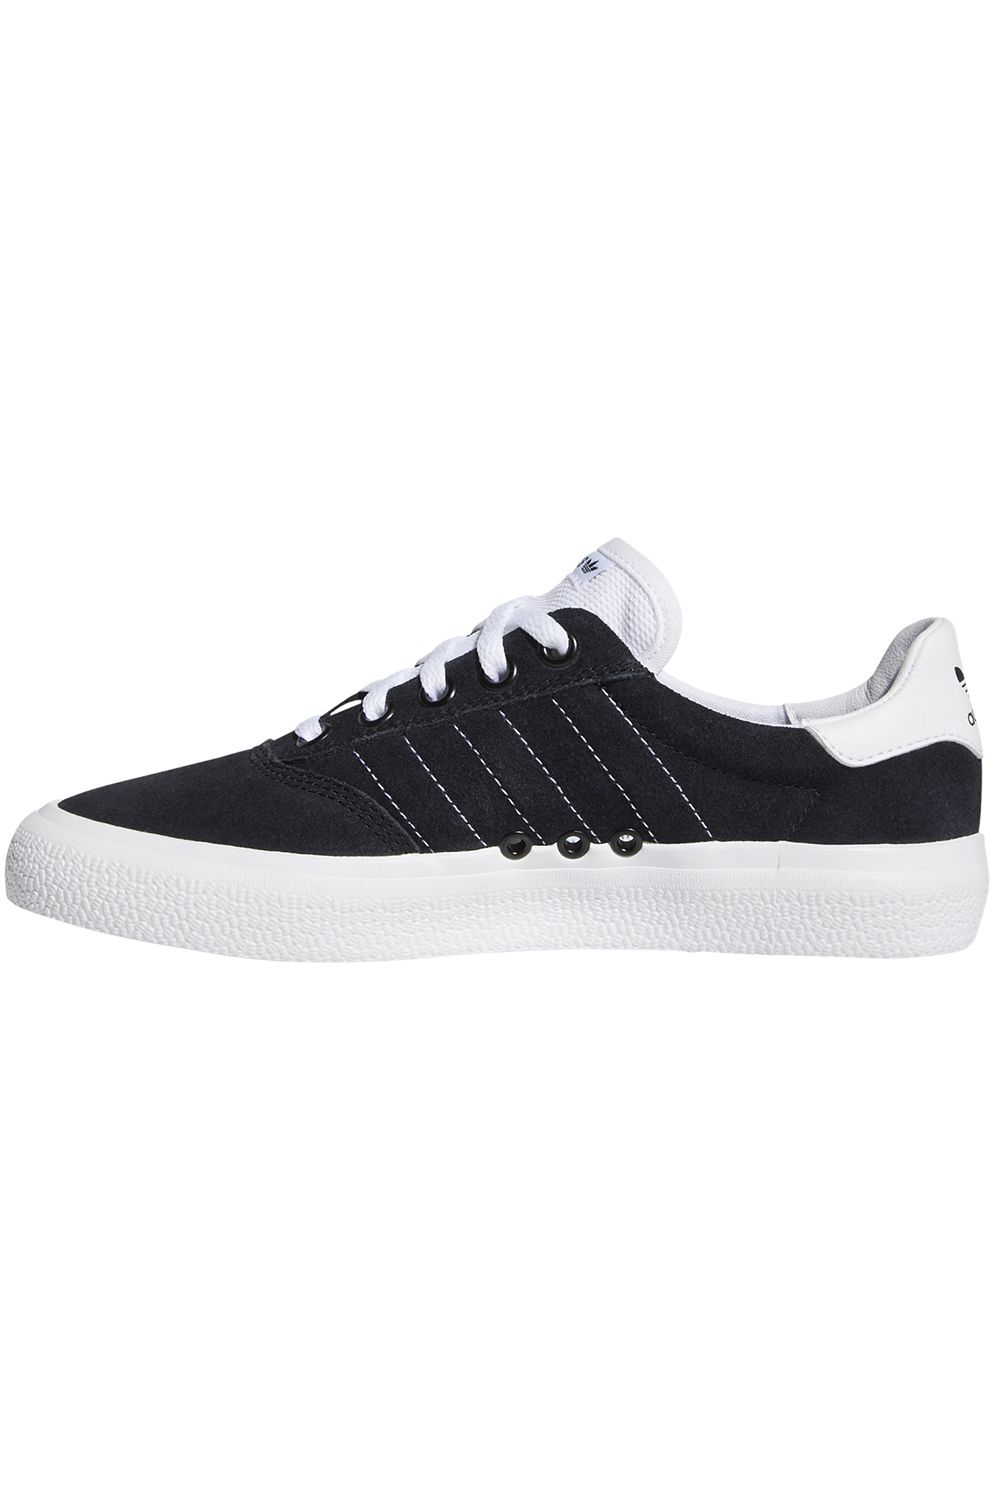 Tenis Adidas 3MC Core Black/Ftwr White/Ftwr White